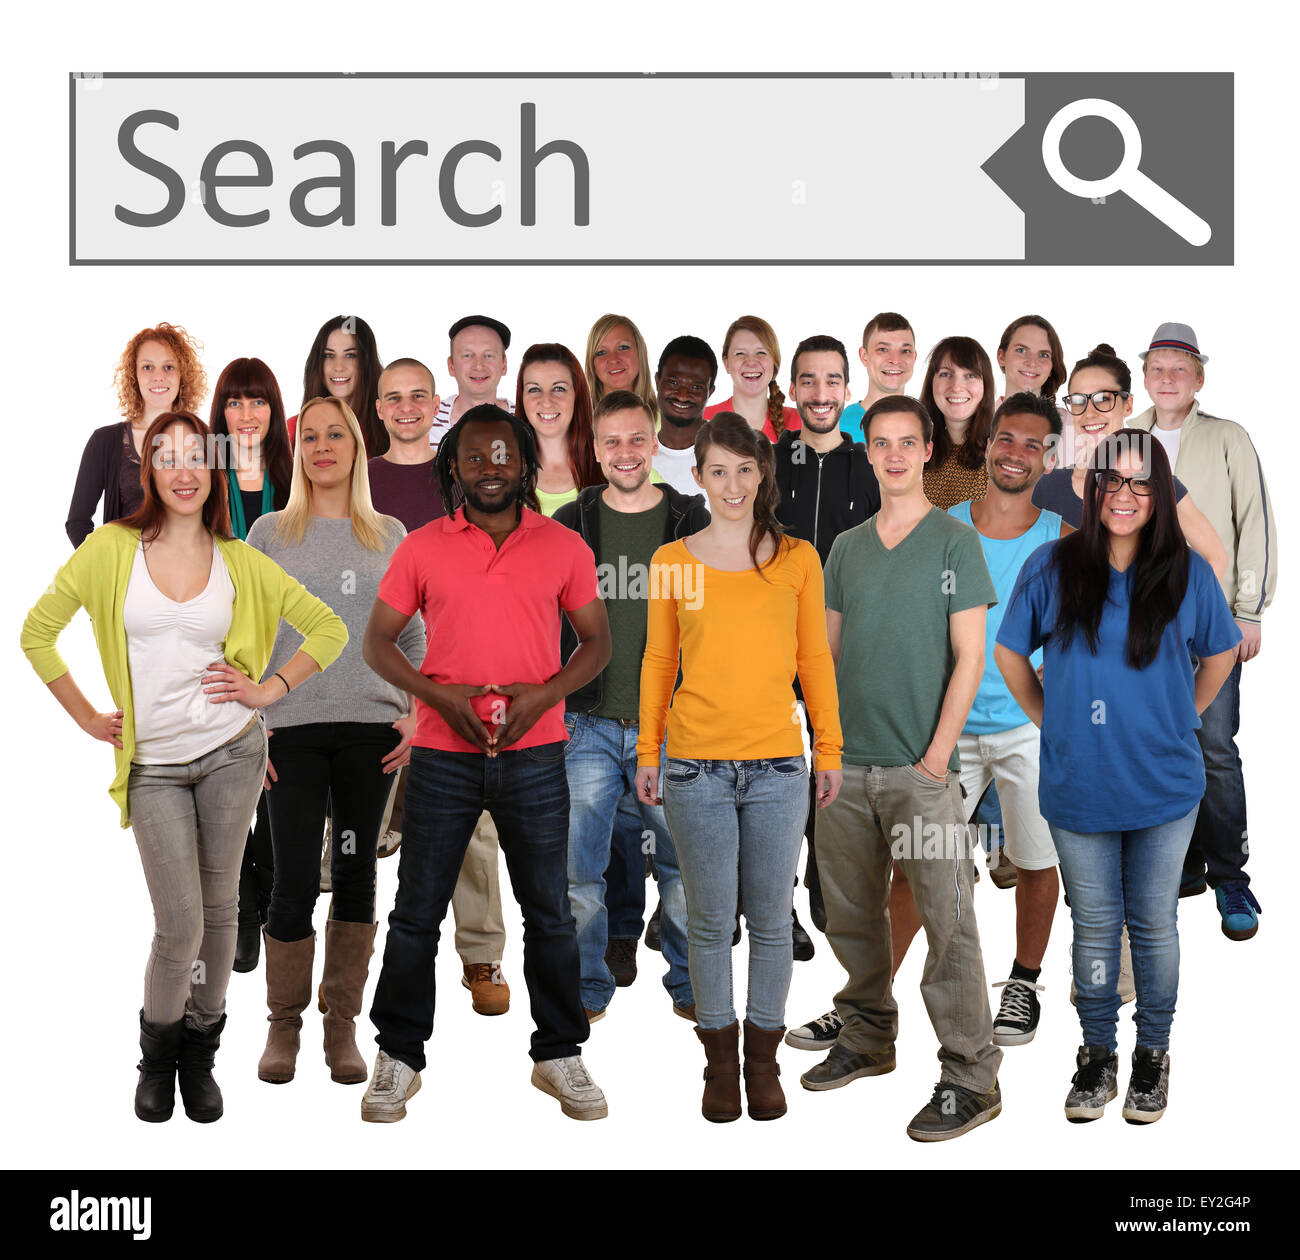 Large group of young smiling people searching with search engine on internet isolated on a white background - Stock Image